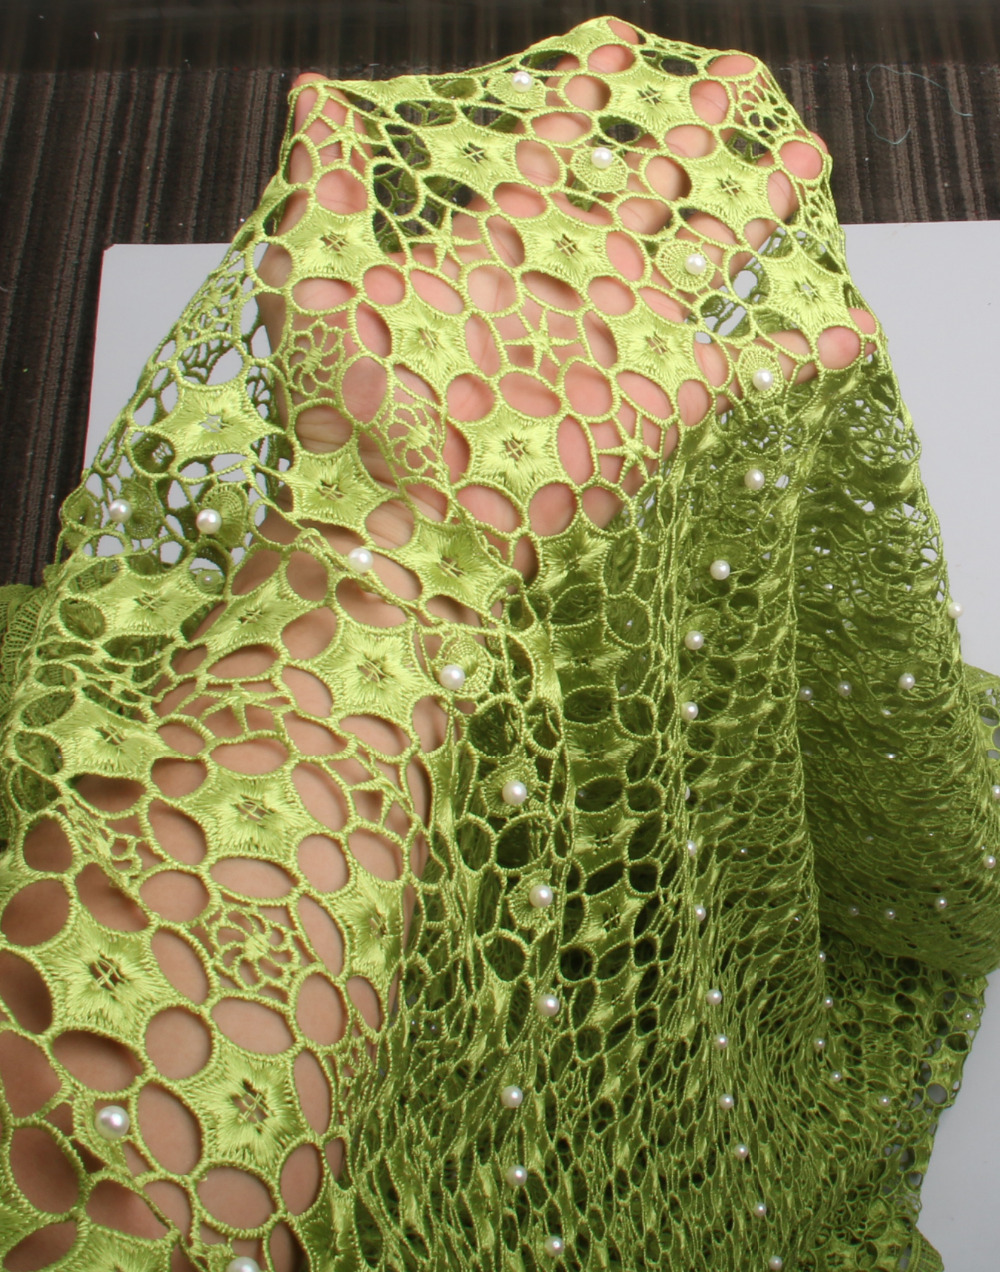 High quality nigerian wedding african lace fabric guipure cord lace fabric for african party 5yards lot